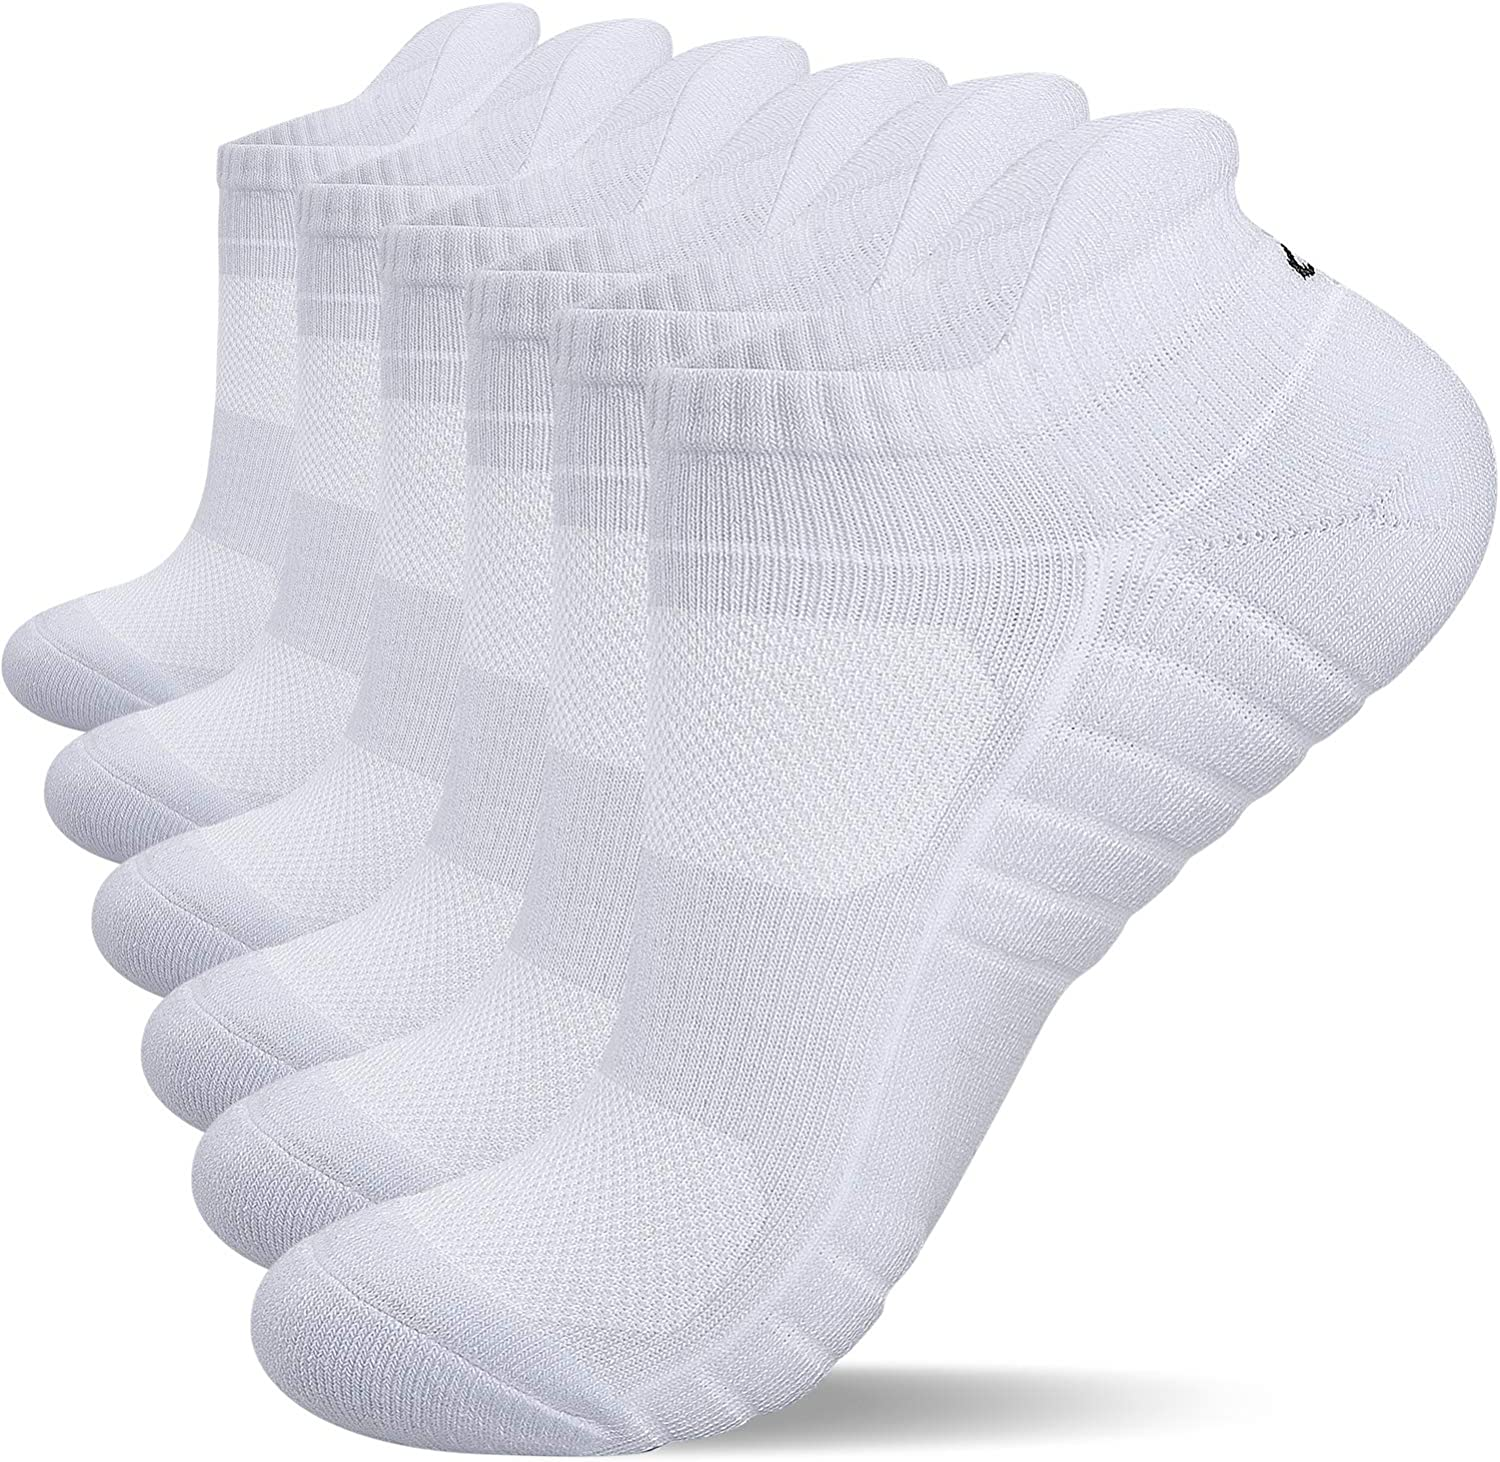 Anqier Trainer Socks Cushioned Odor-free Thermal Sports Socks Running Socks for Men Women Ladies No Itching Low Cut Athletic Socks Cotton Ankle Socks 6 Pairs